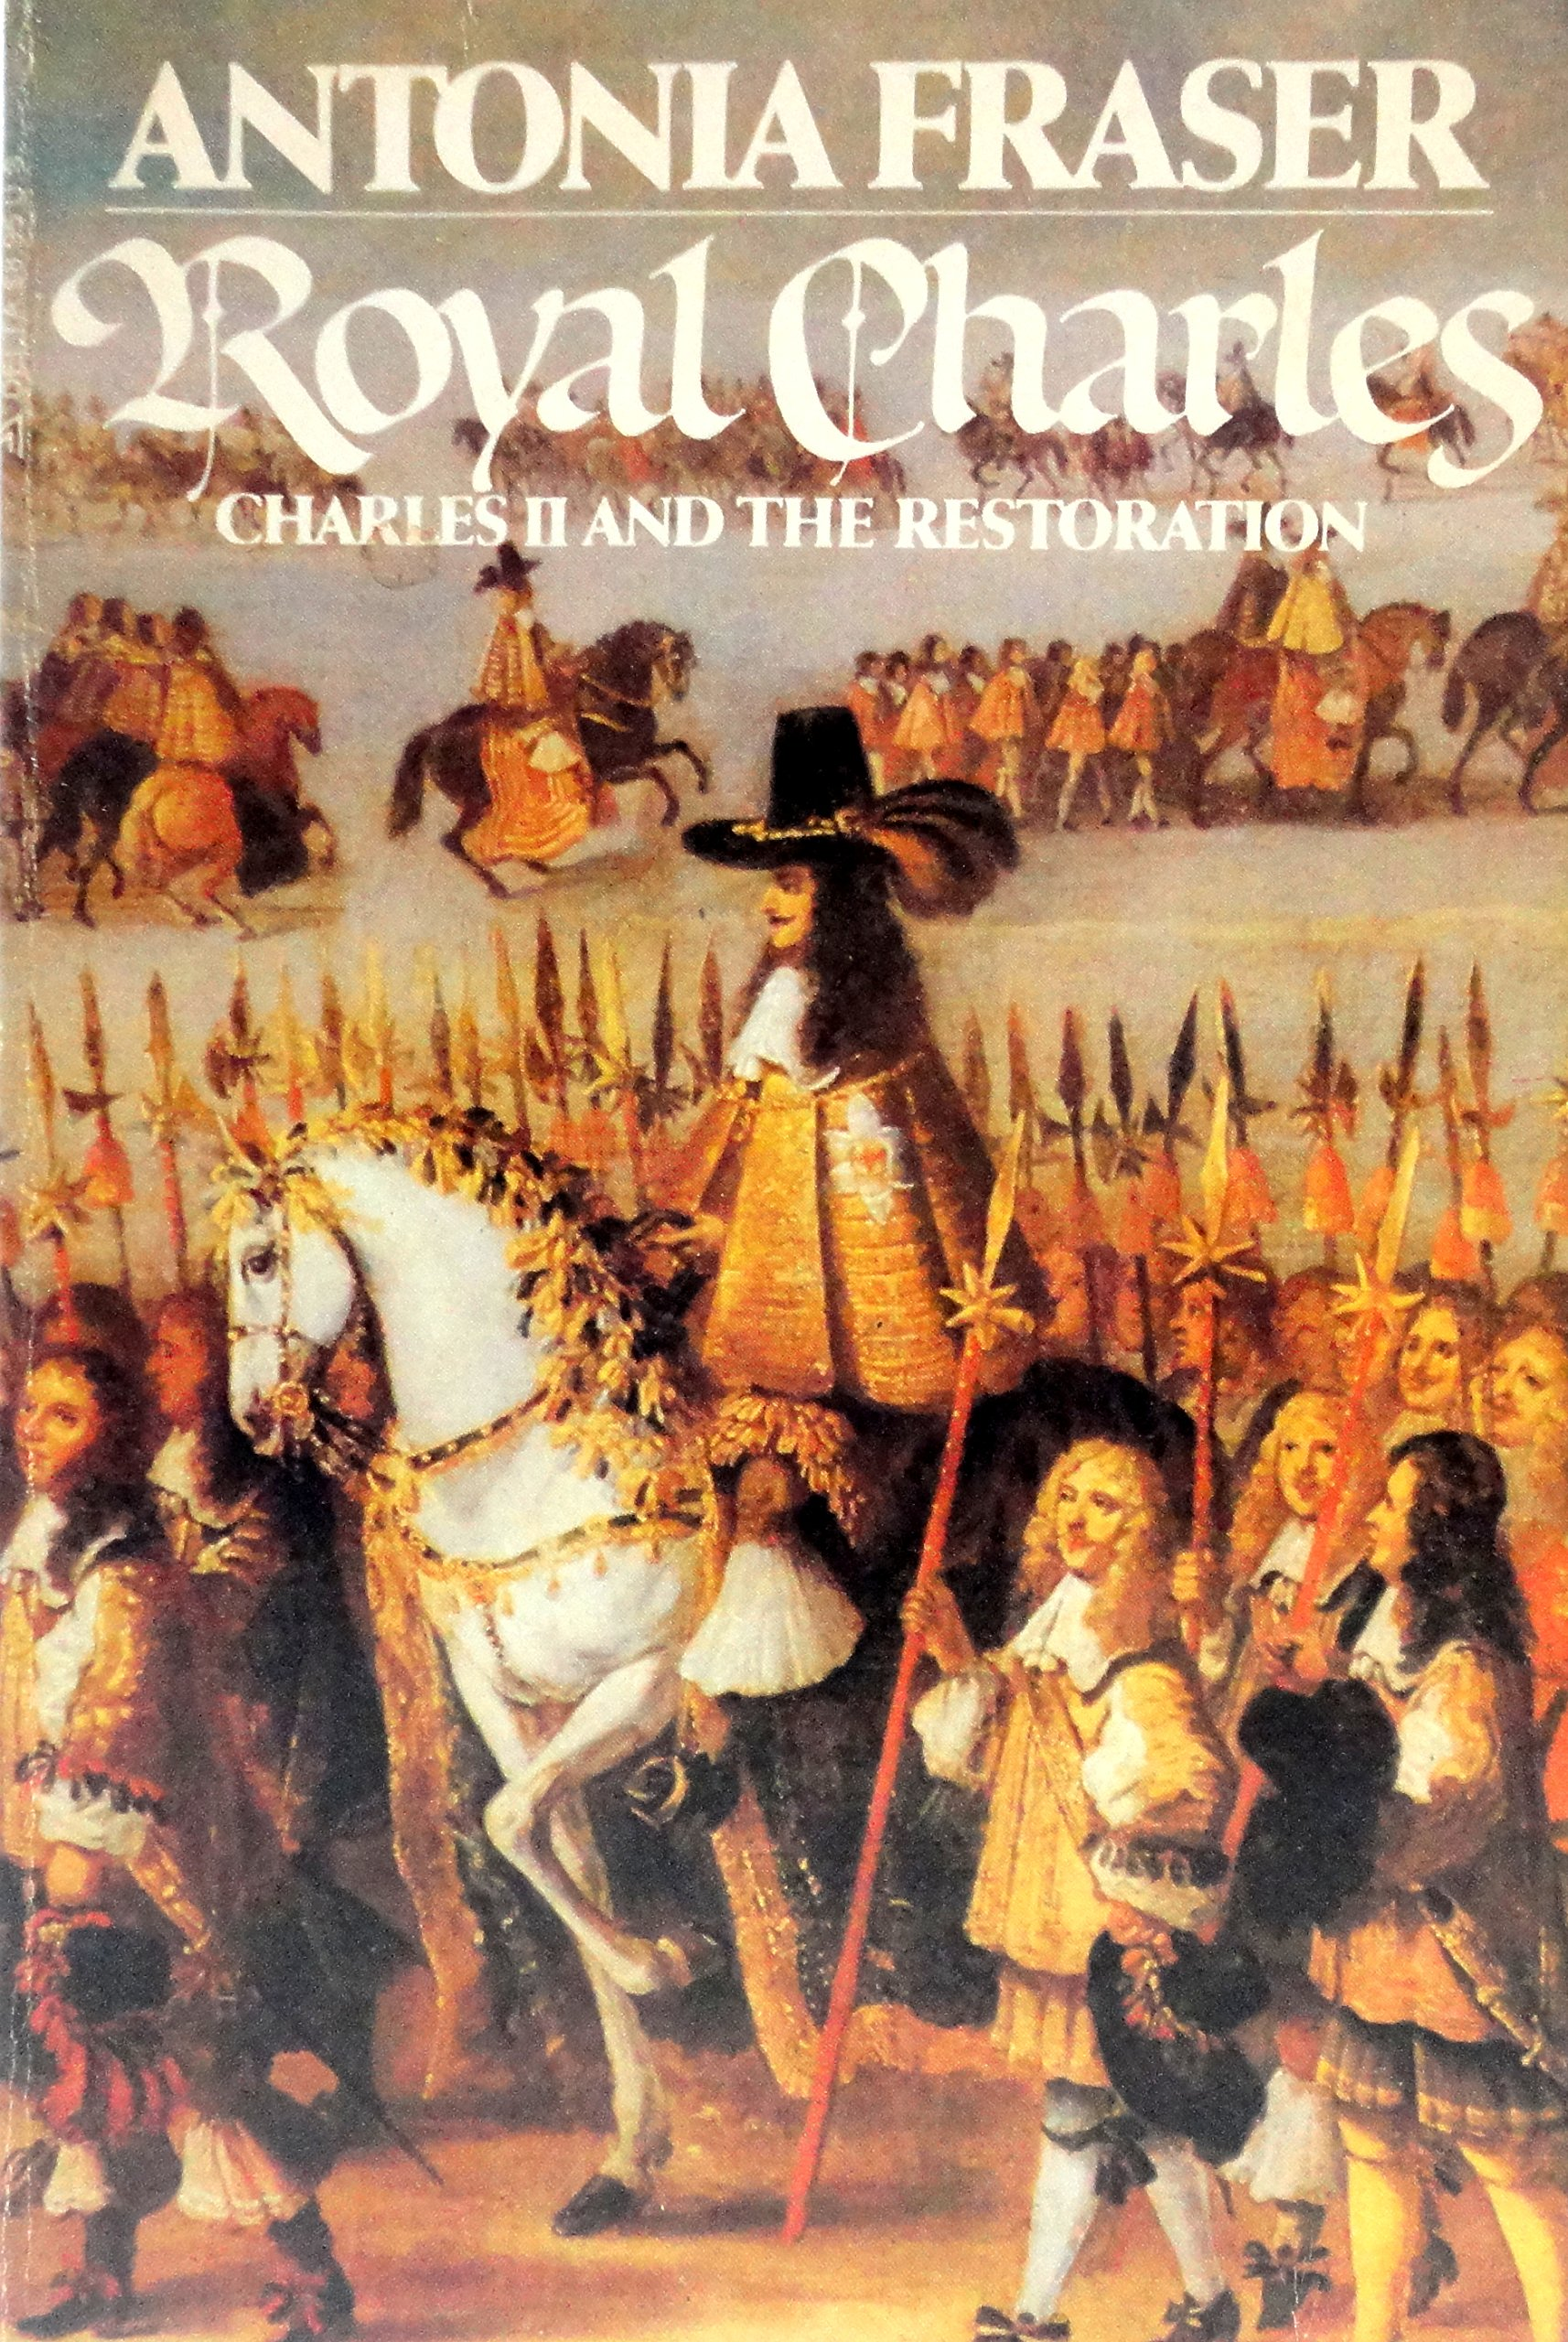 Royal Charles: Charles Ii And The Restoration: Antonia Fraser:  9780440569602: Amazon: Books